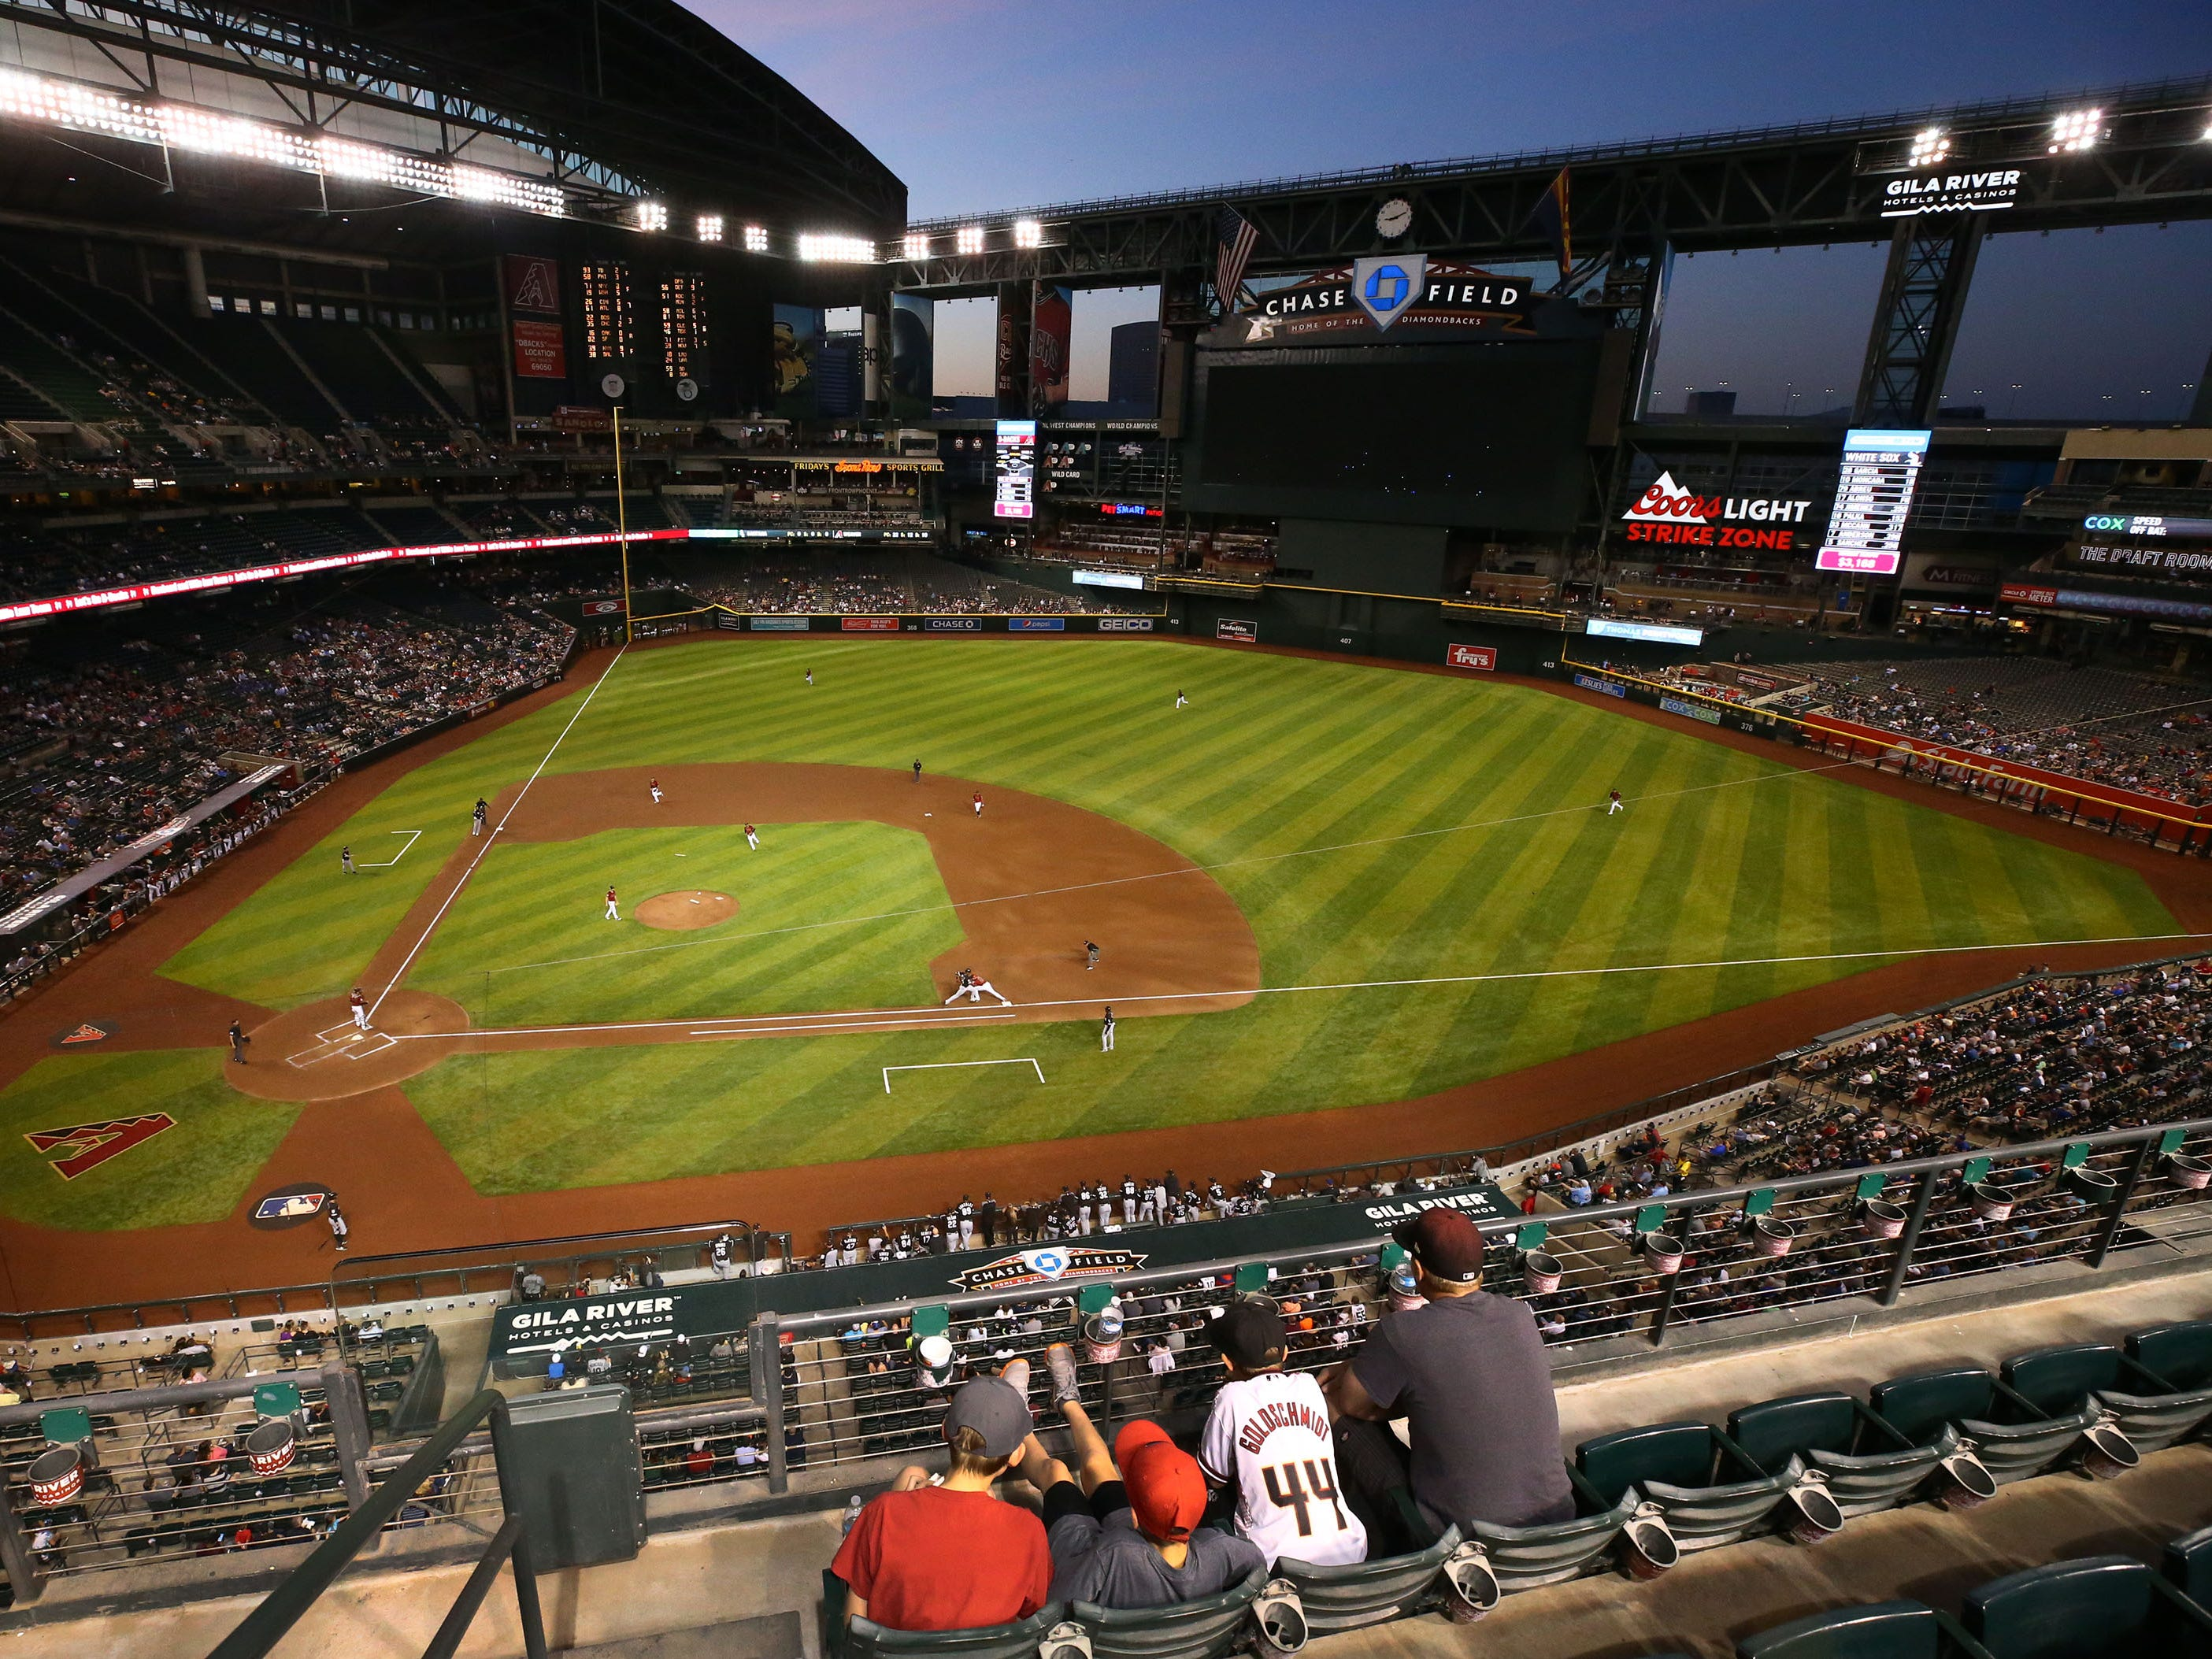 Arizona Diamondbacks fans watch the action against the Chicago White Sox in the second inning during a spring training game on Mar. 25, 2019 at Chase Field in Phoenix, Ariz.